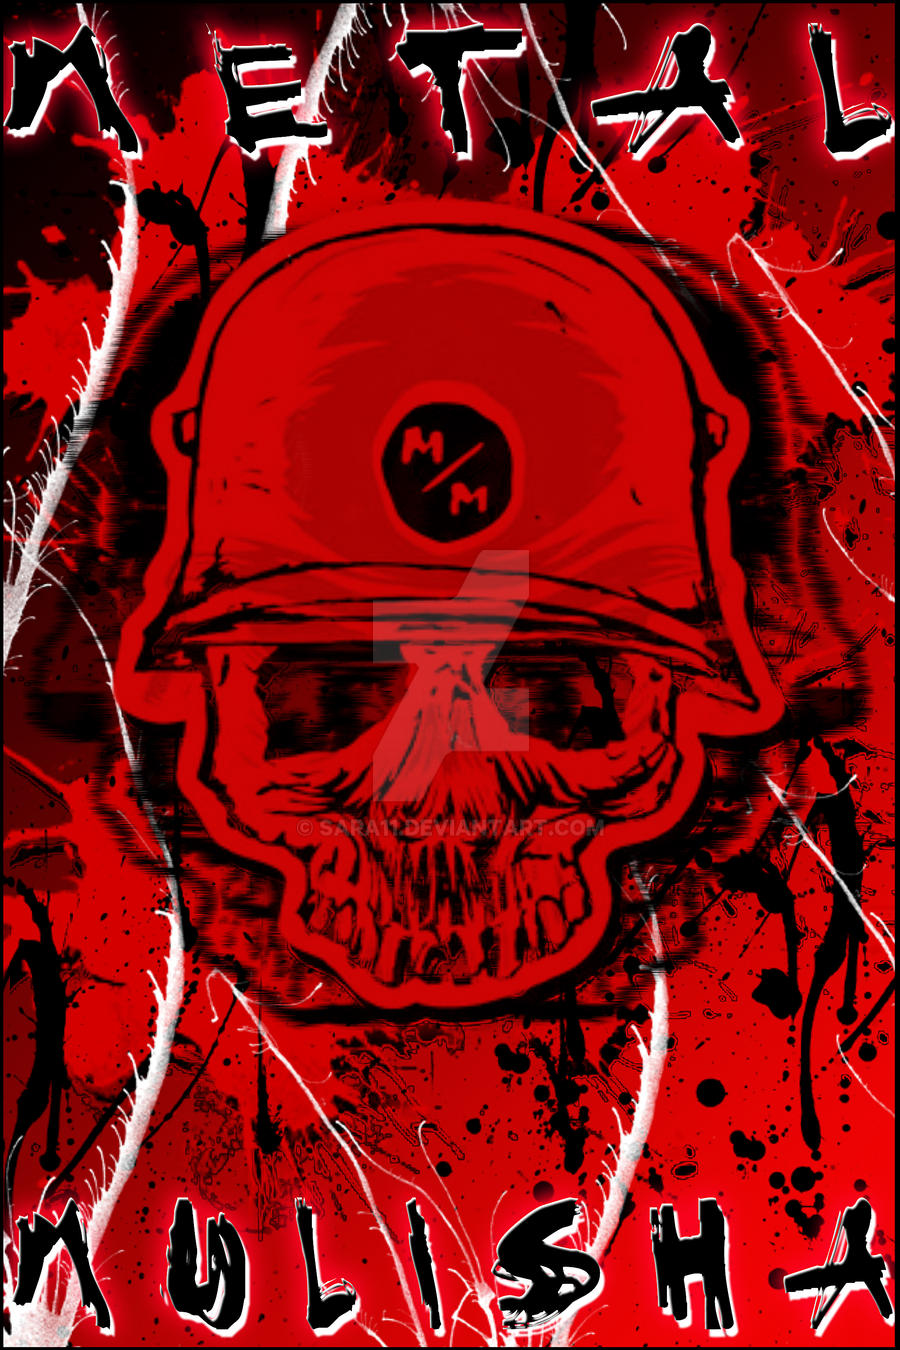 metal mulisha postersara11 on deviantart